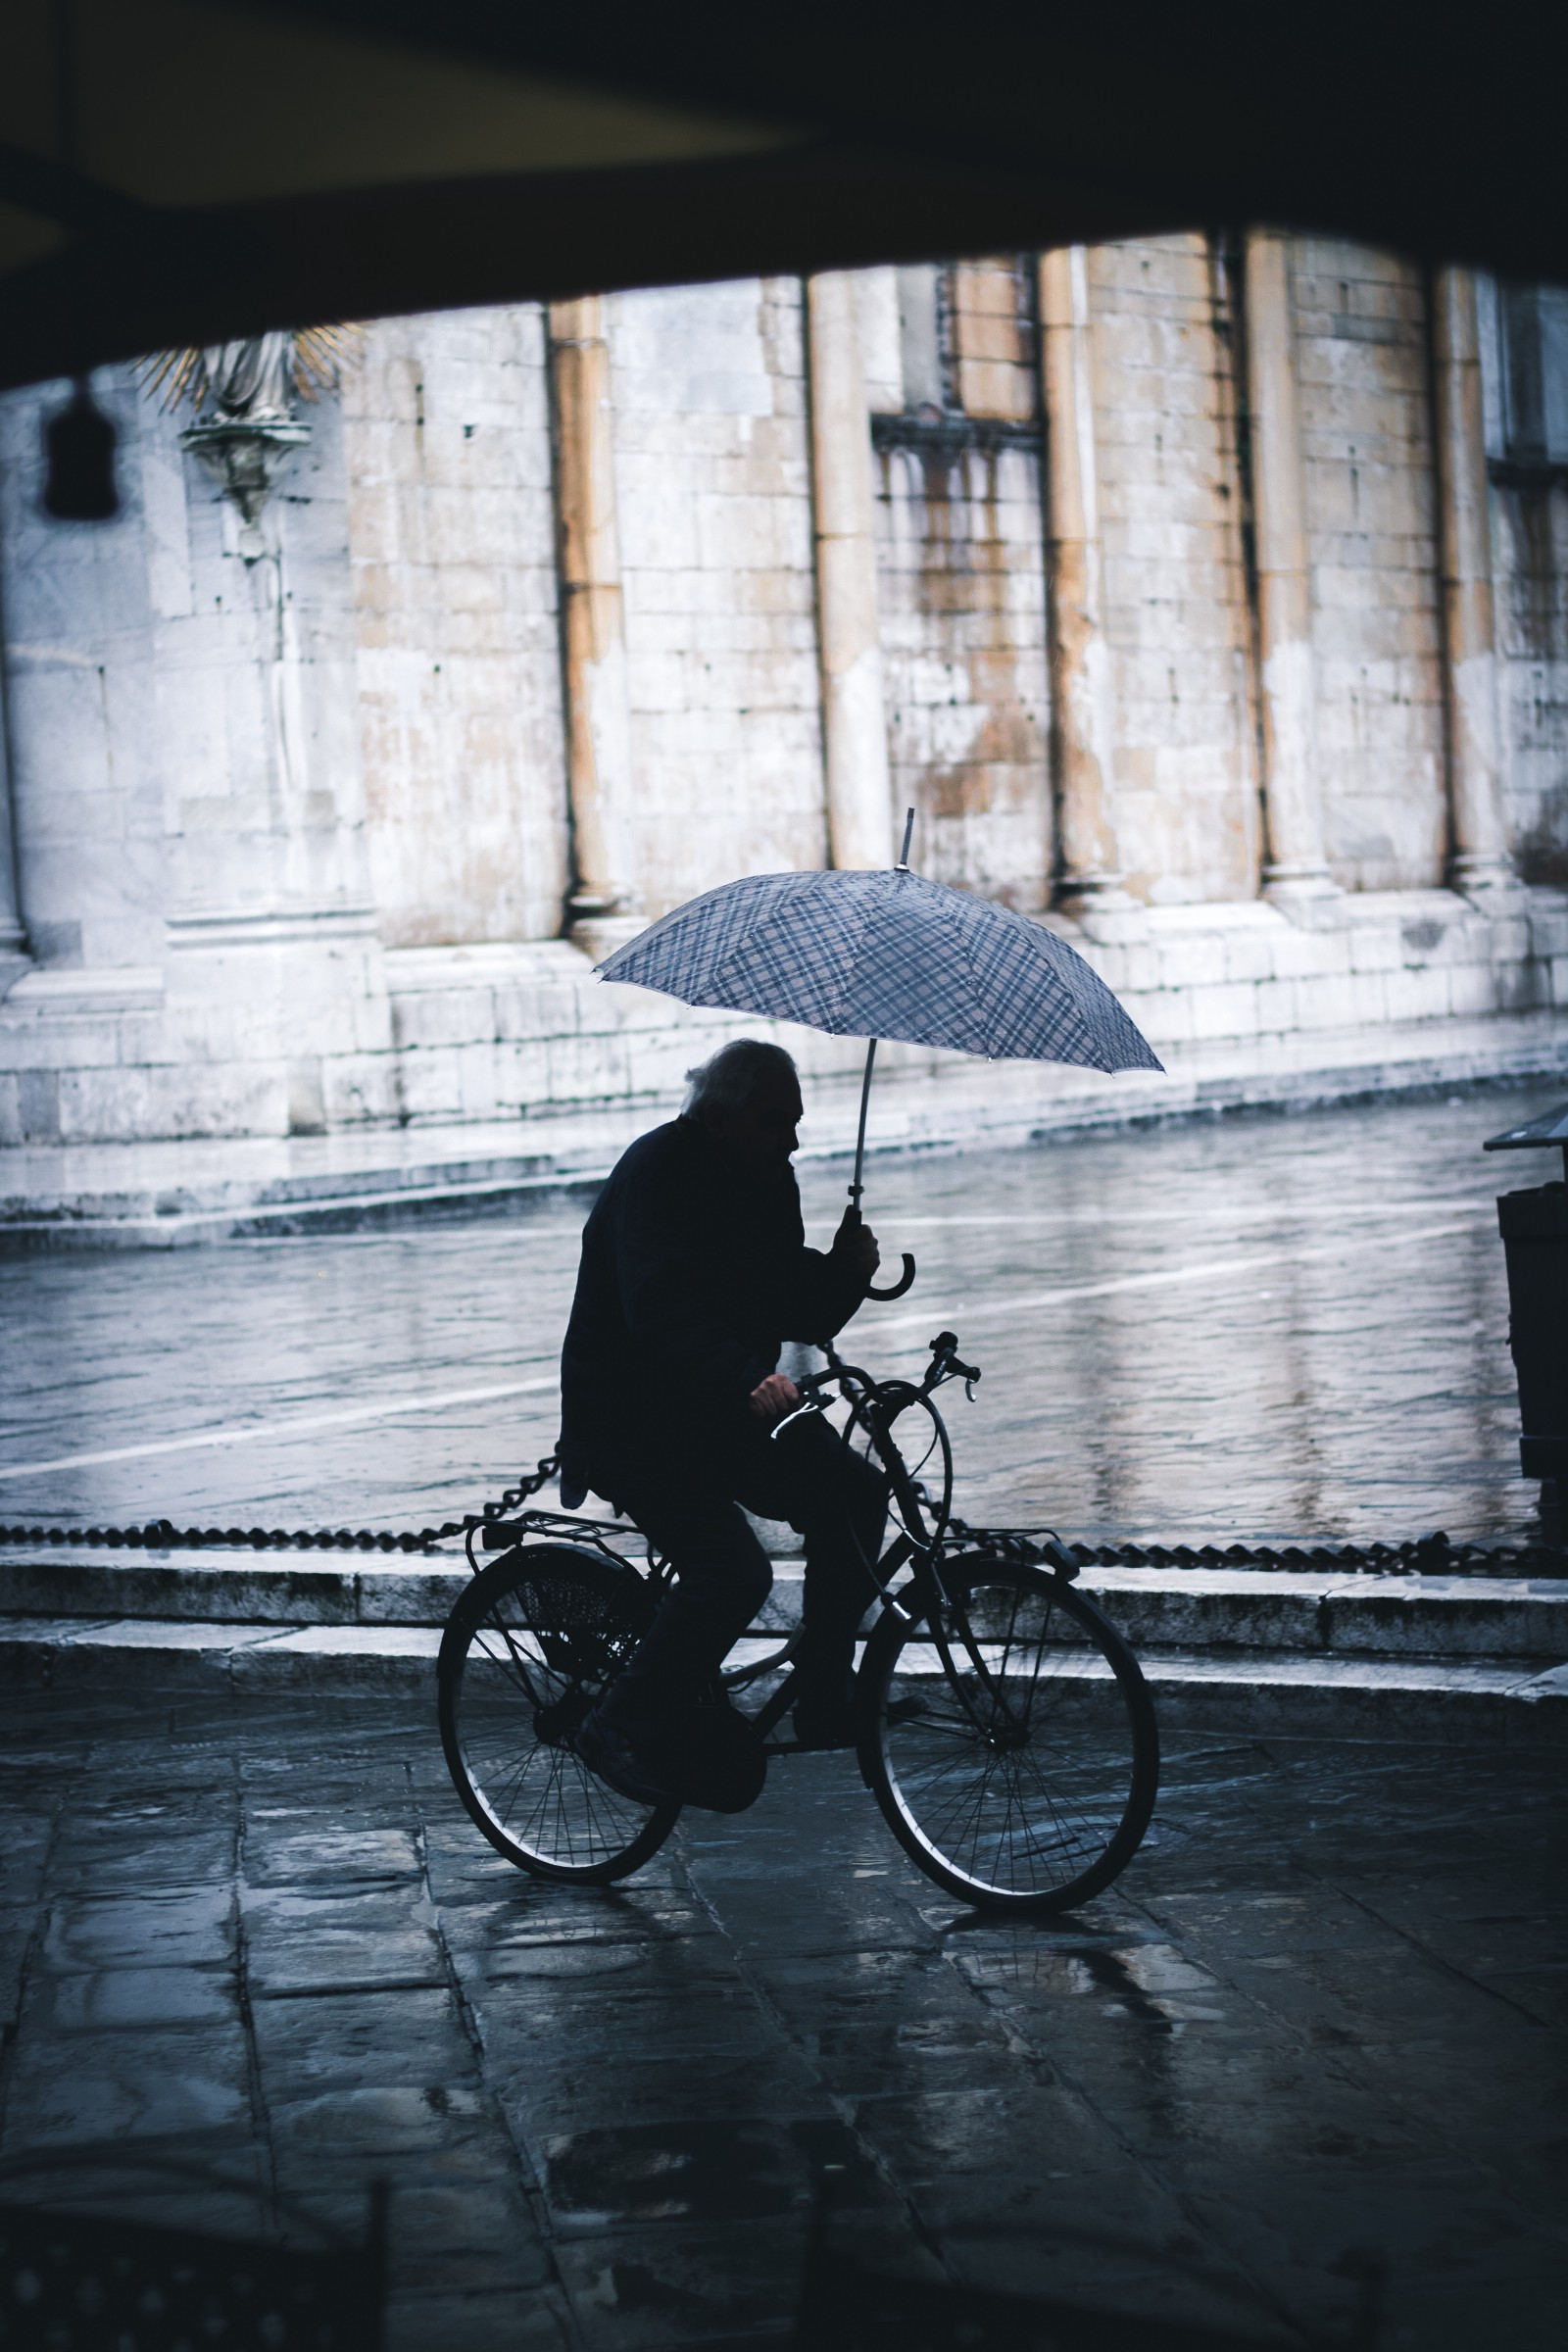 /the-bicycle-umbrella-and-now-cryptocurrency-2ea3b06caaf feature image